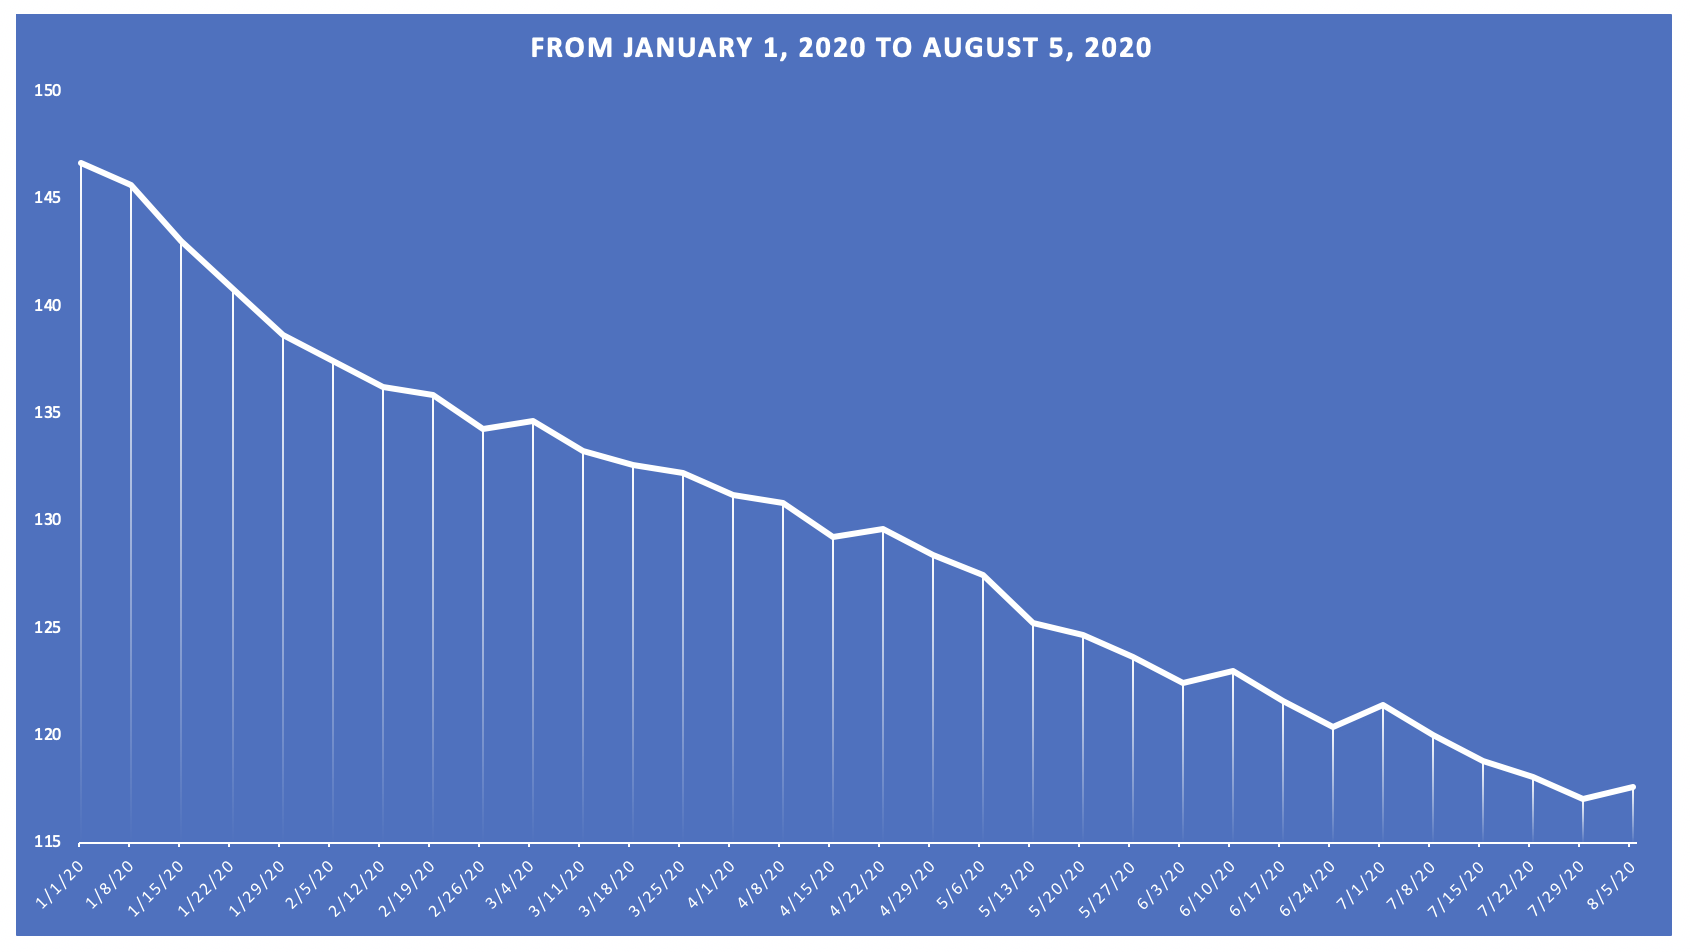 Finally-Keto Susan's weight loss chart updated Jan 1, 2020 to Aug 5, 2020